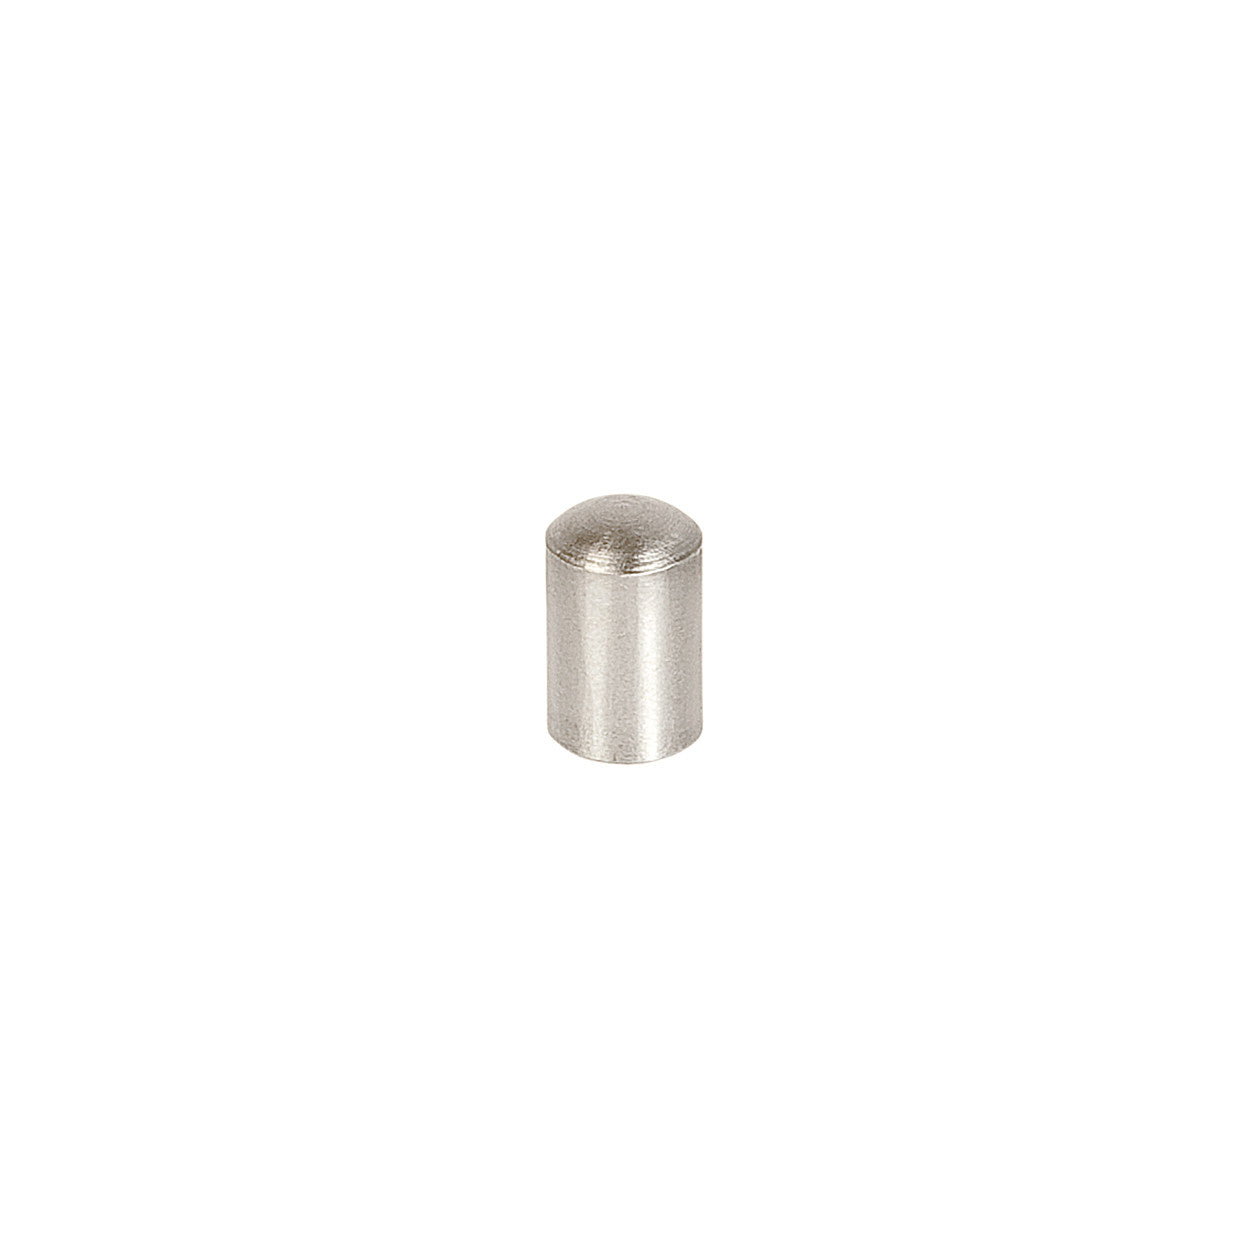 Signage Hardware Finishing Top Cap For Stem 19mm H T1259SC